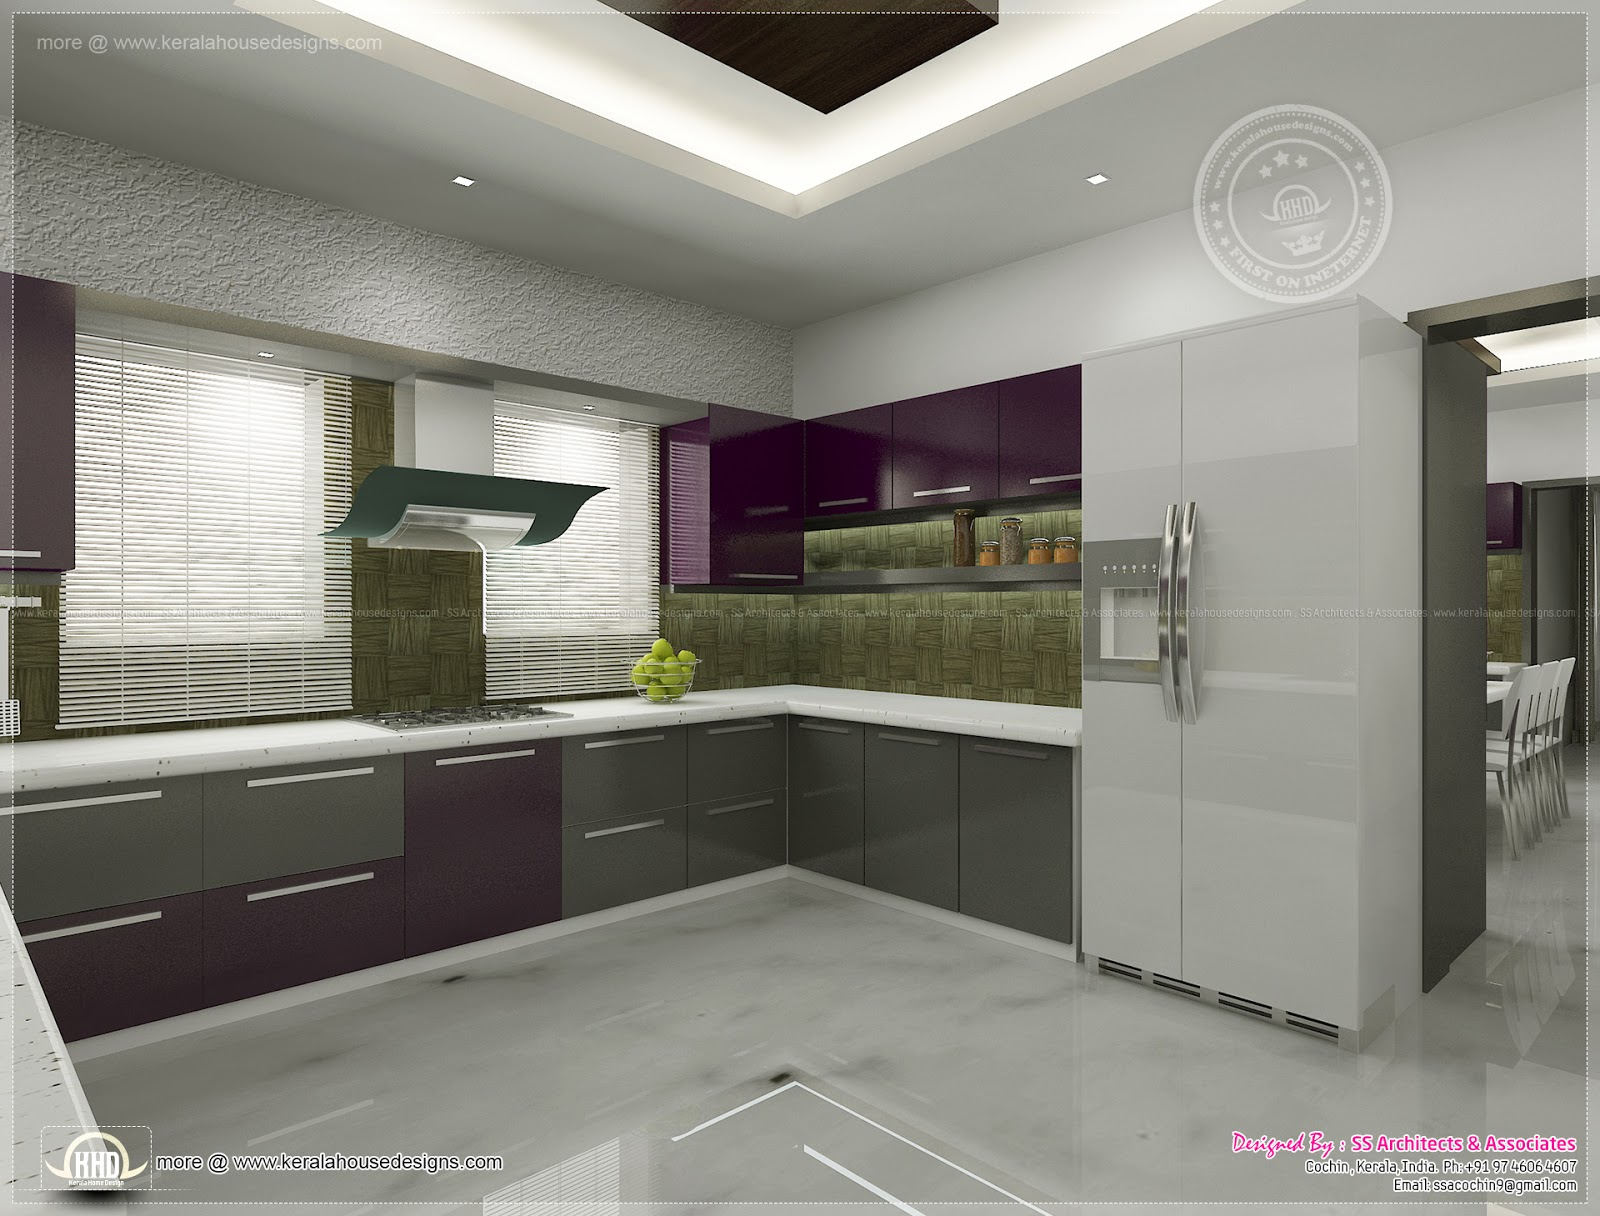 Kitchen interior views by ss architects cochin kerala home design and floor plans Home interior design ideas for kitchen